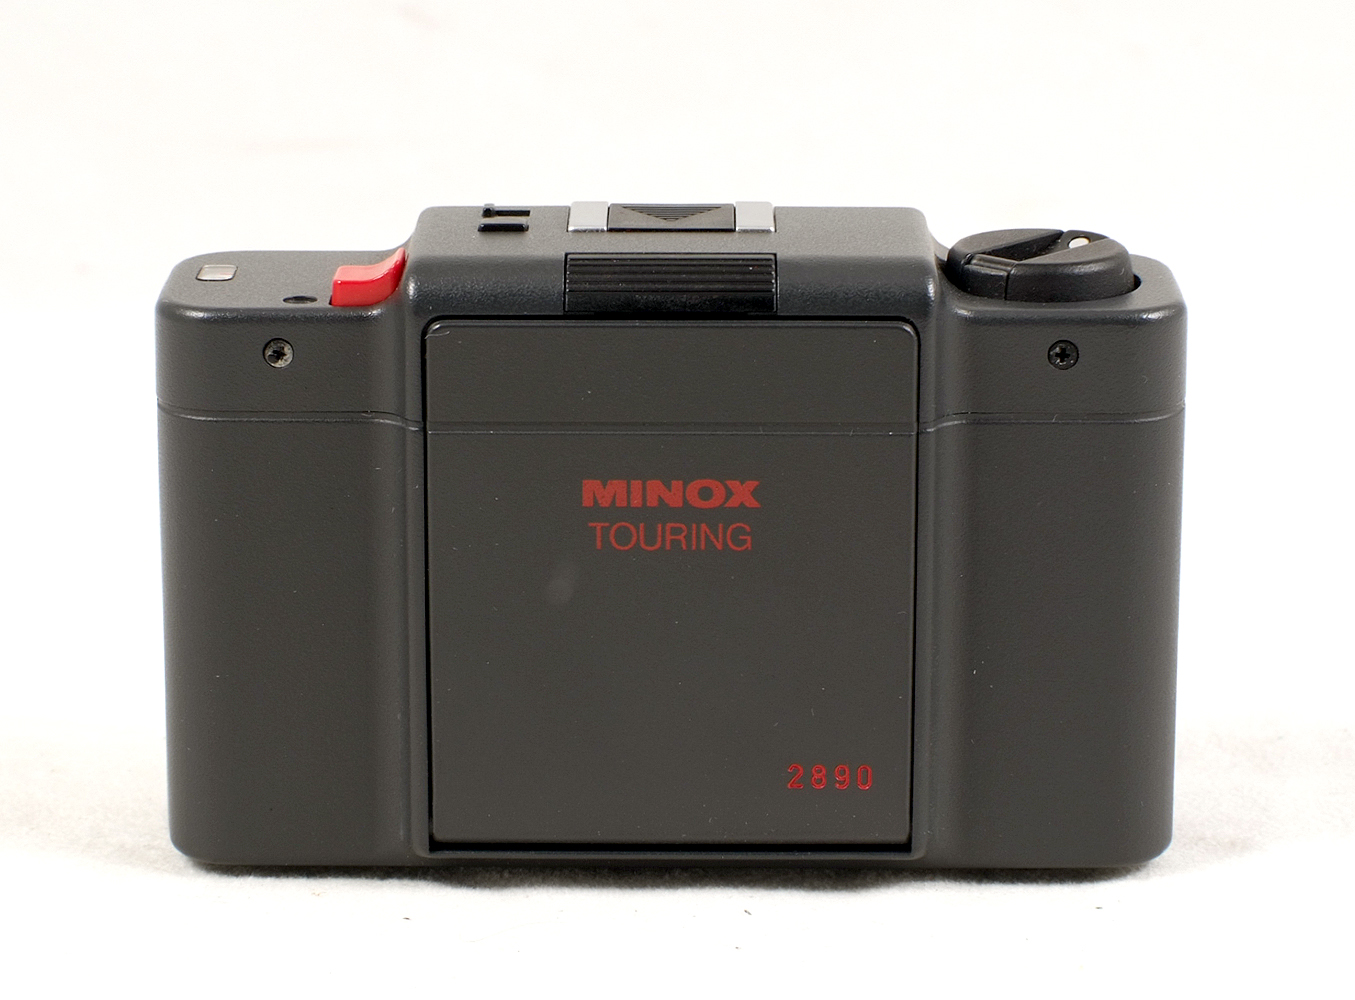 Lot 49 - Minox 35mm Collection. Comprising Minox Touring limited edition camera #2890 of 3333 produced.